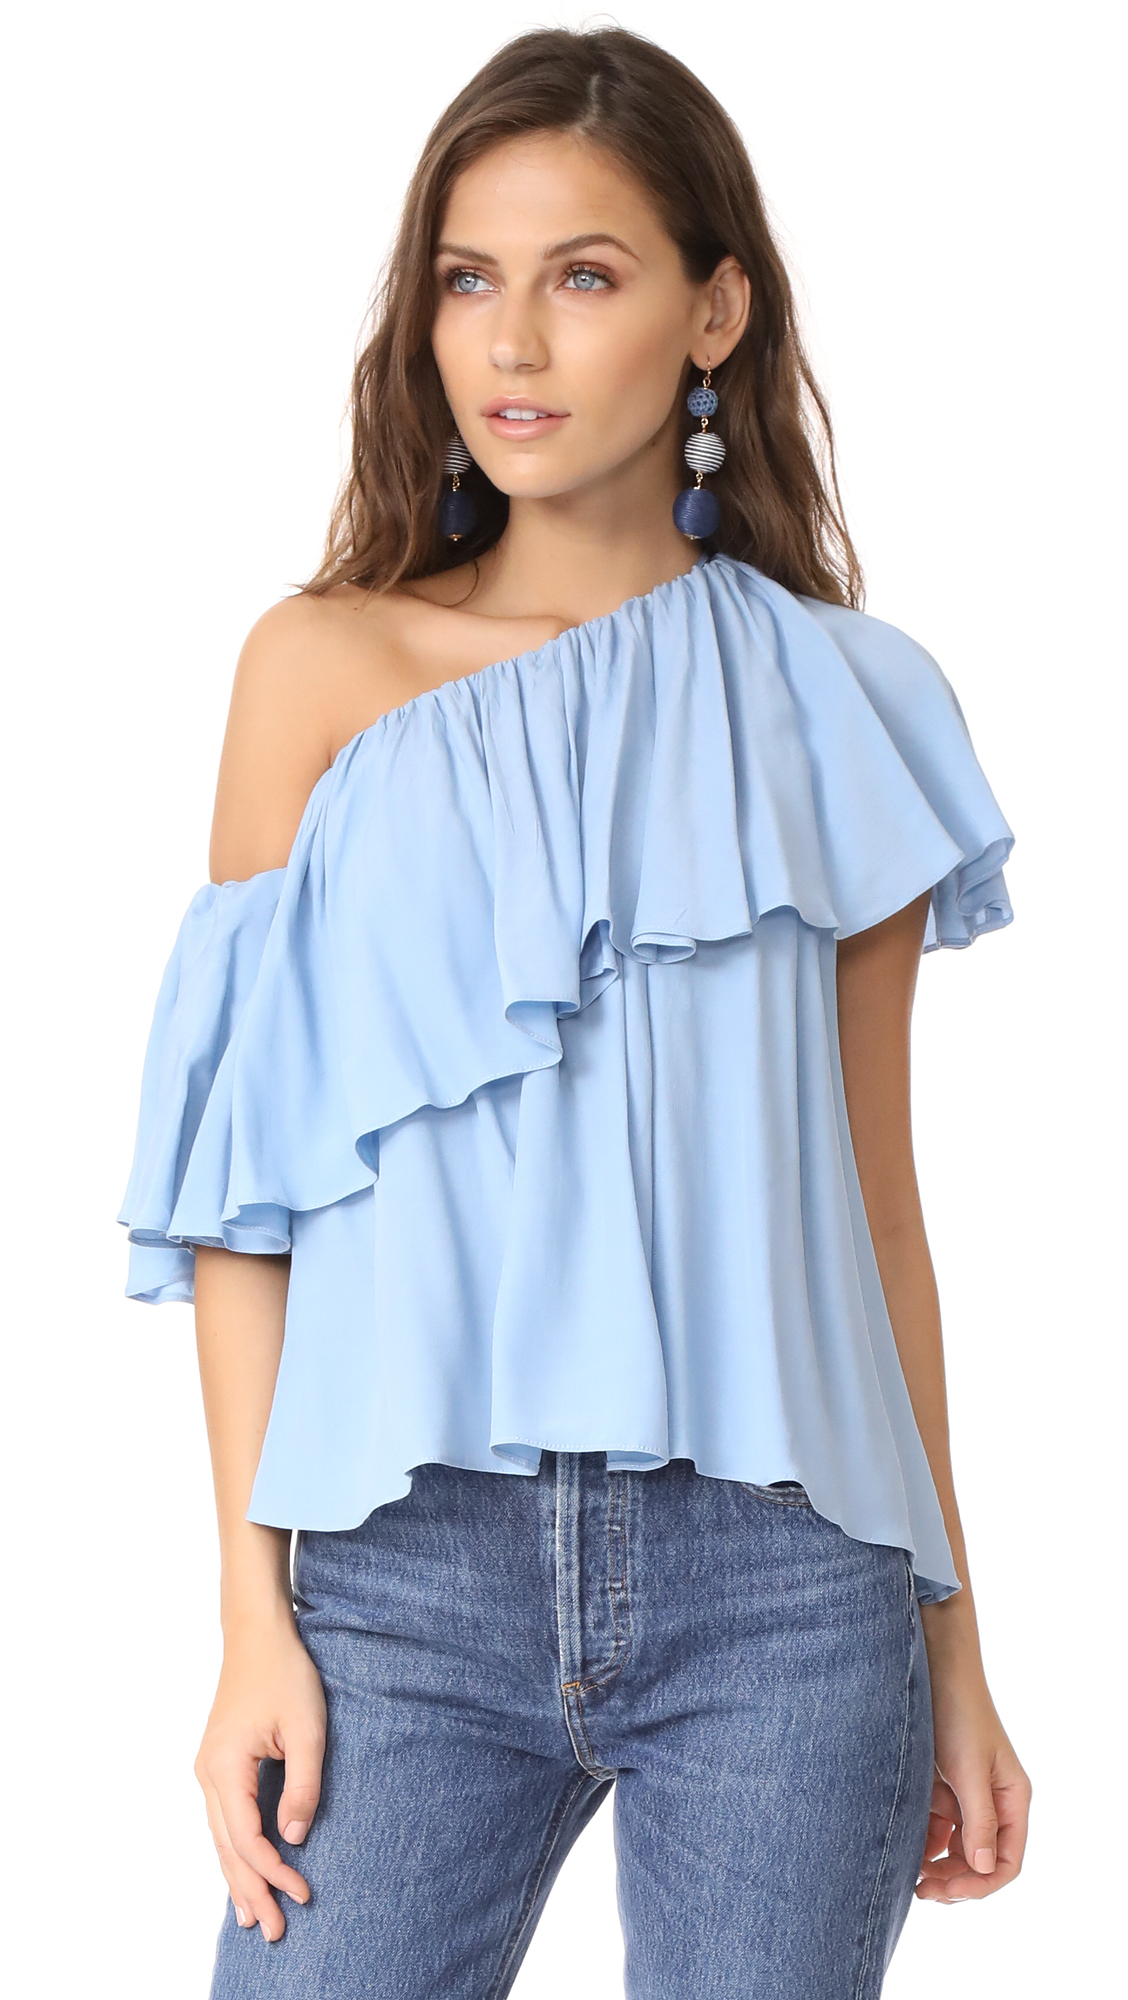 MLM LABEL One Shoulder Maison Top - Baby Blue